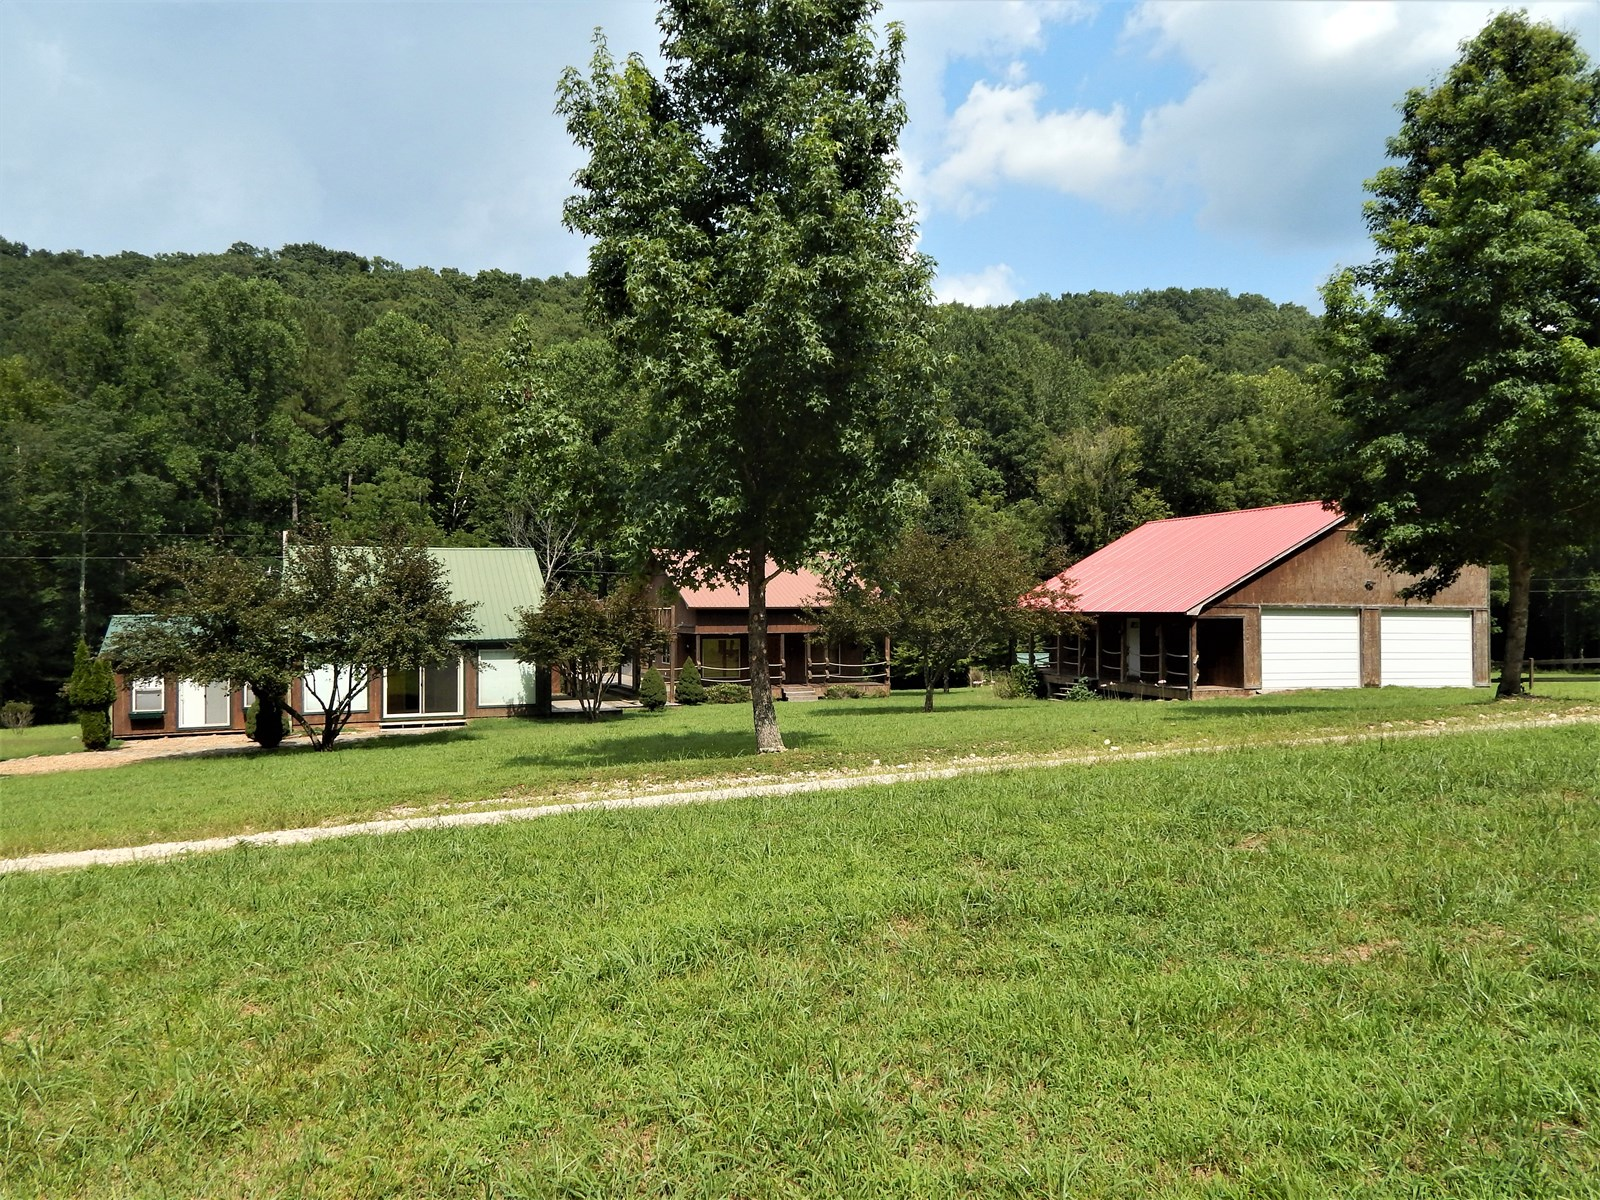 Rustic Tennessee Country Home For Sale!!! Country Setting!